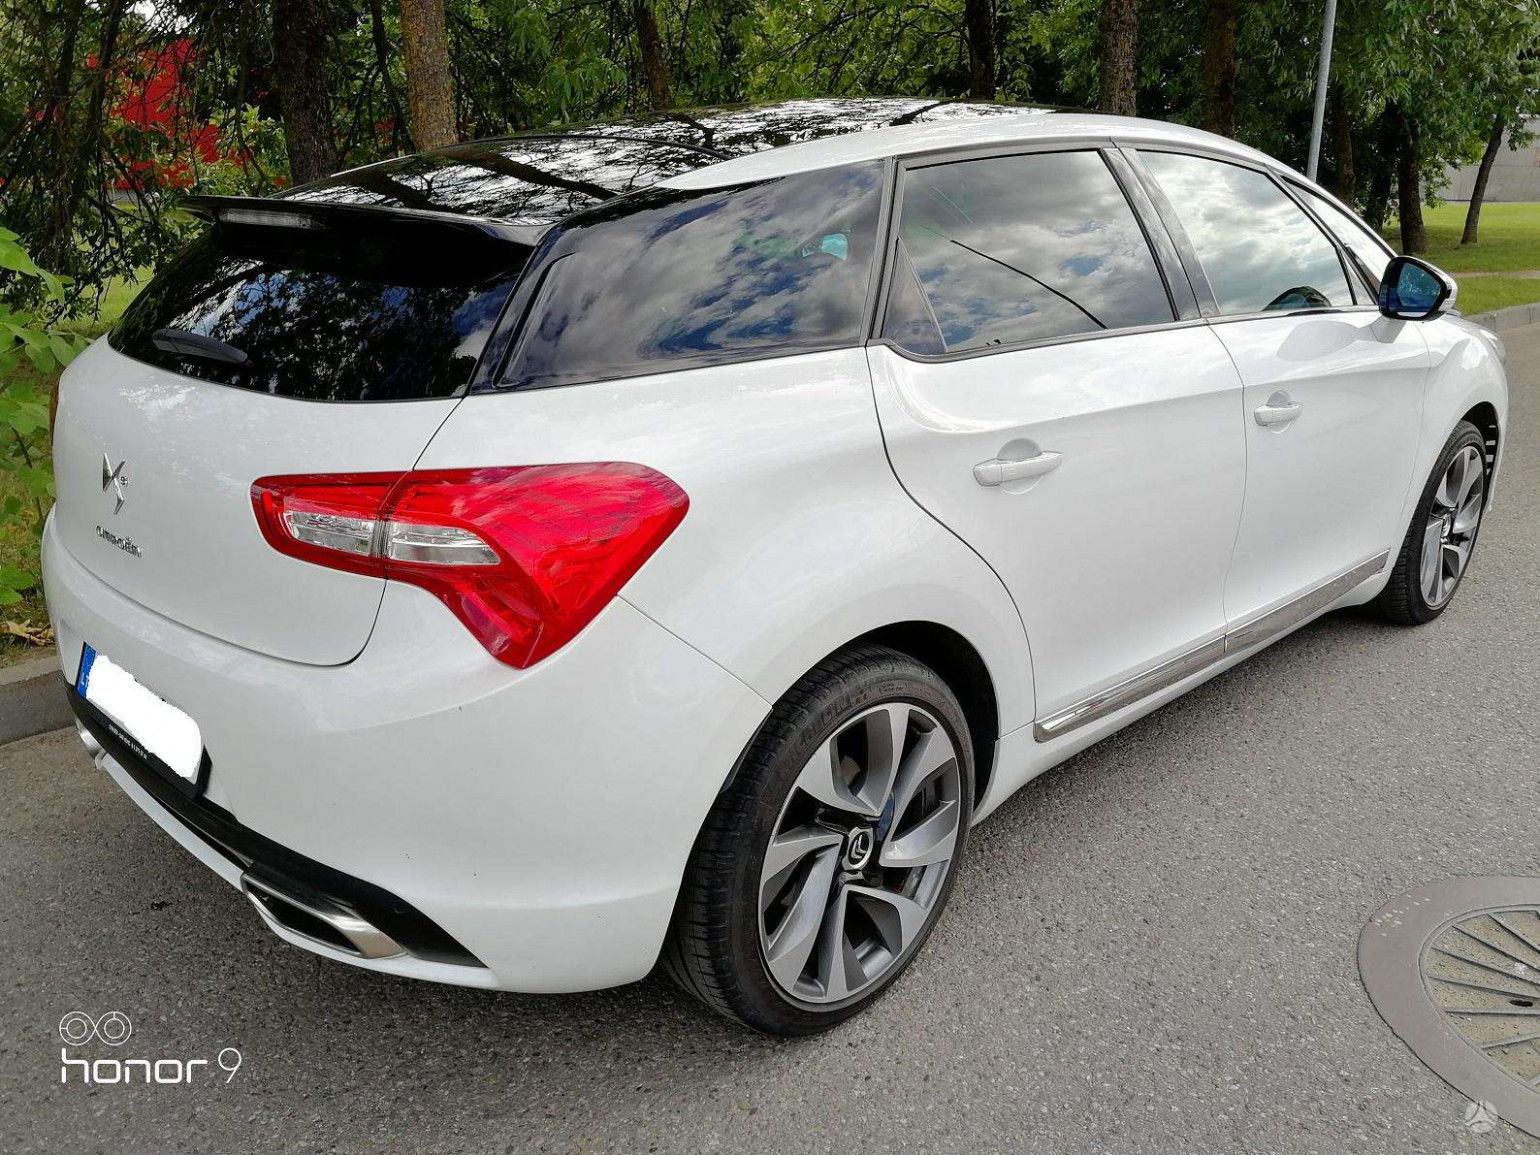 Overview 2022 Citroen DS5